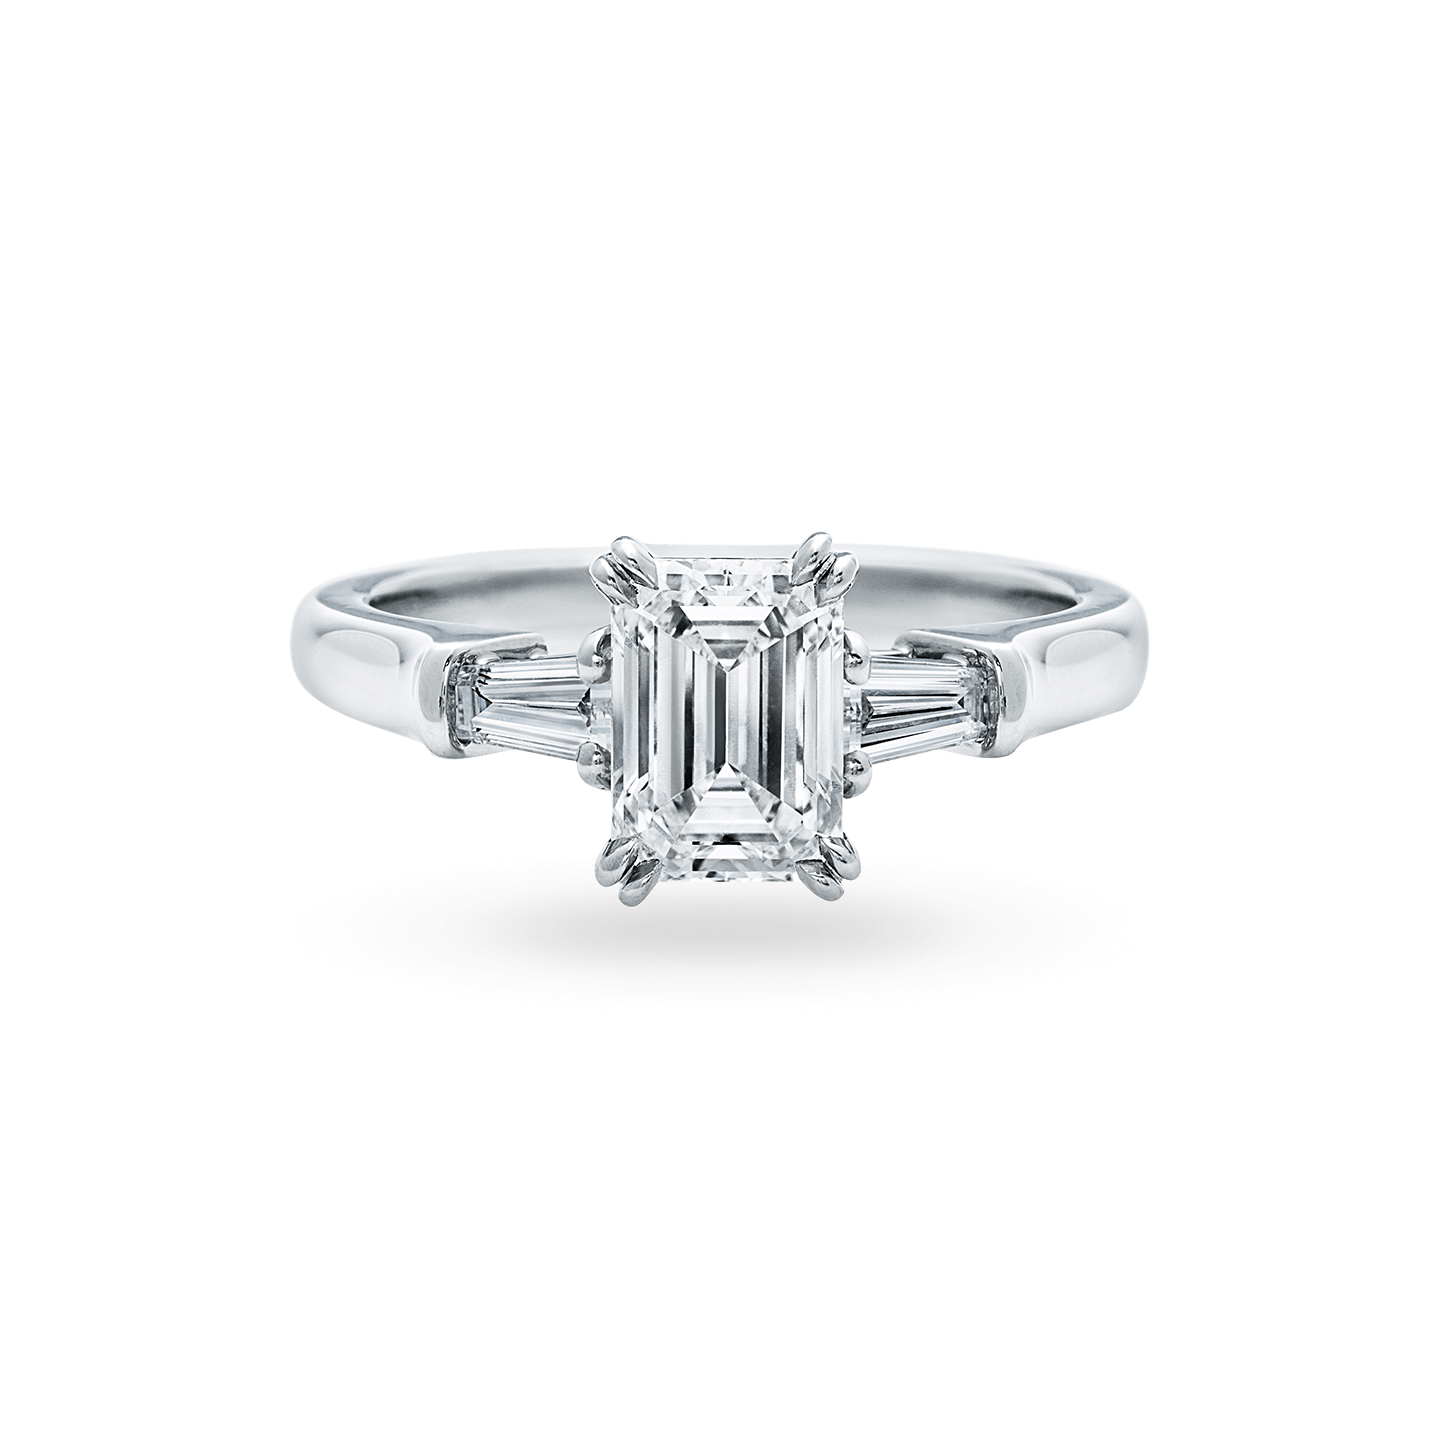 Classic Winston Emerald-Cut Engagement Ring with Tapered Baguette Side Stones, Product Image 1